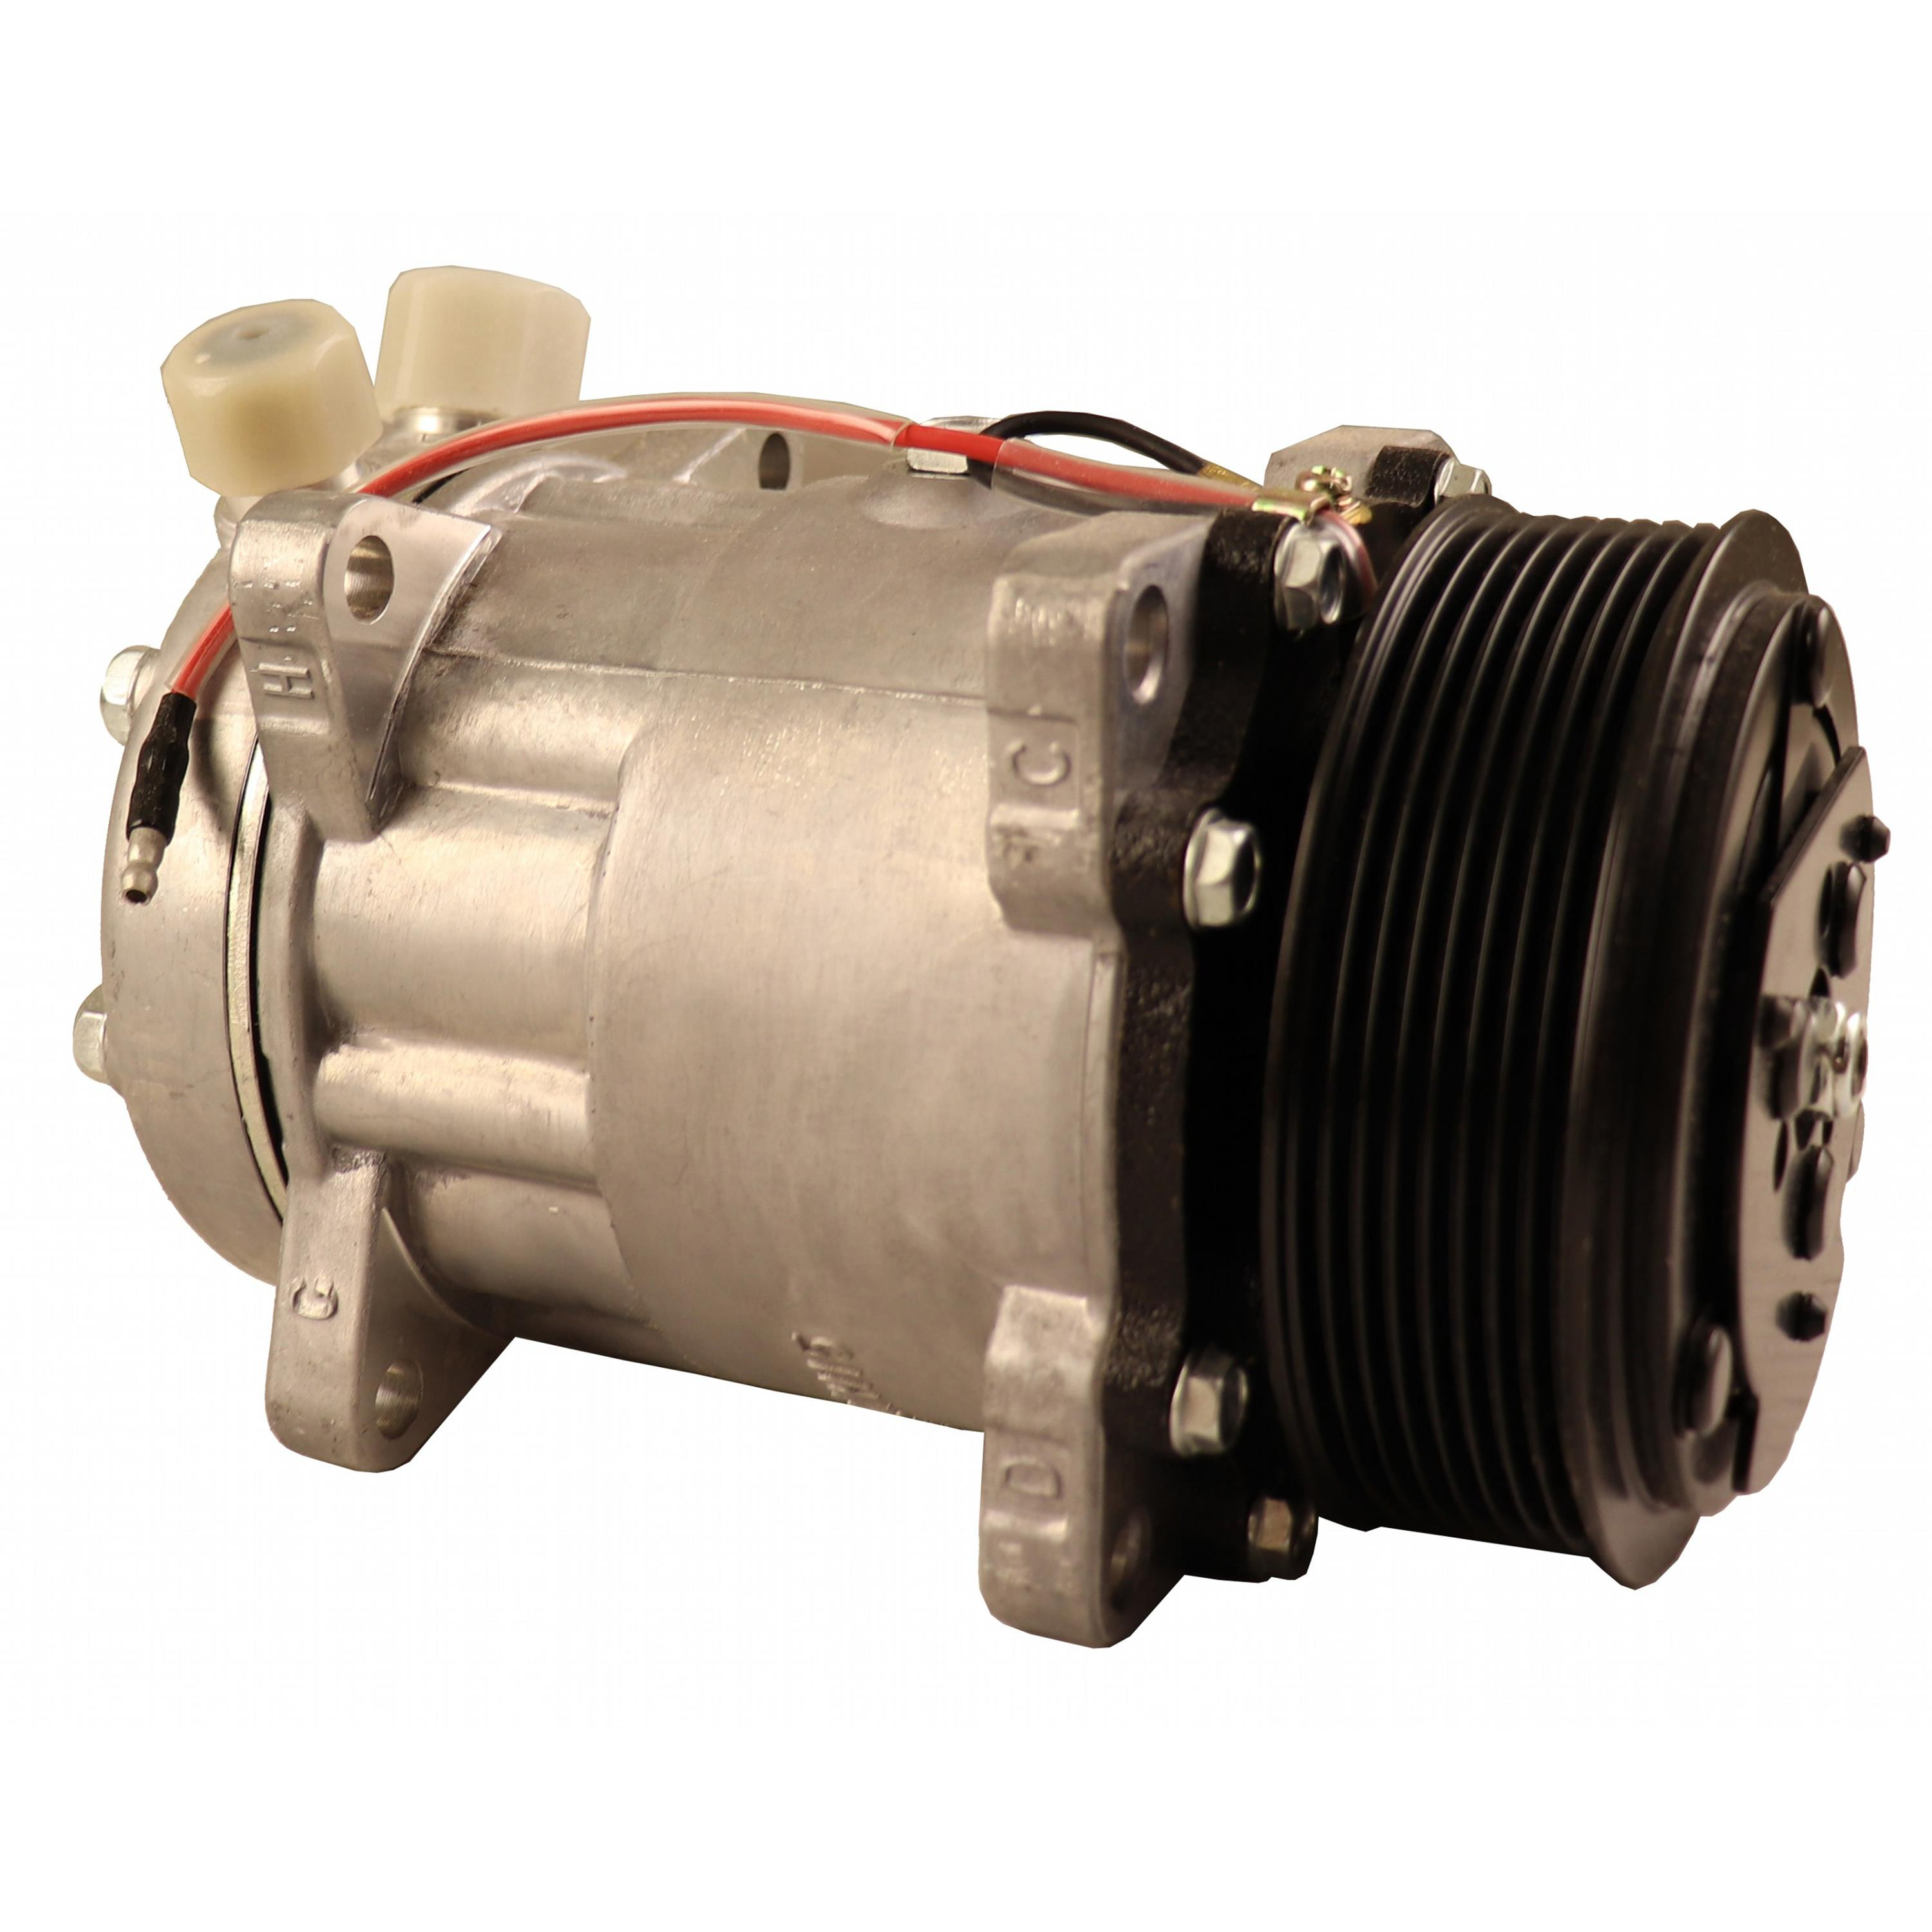 Sanden Sd7h15 Compressor W 8 Groove Clutch New